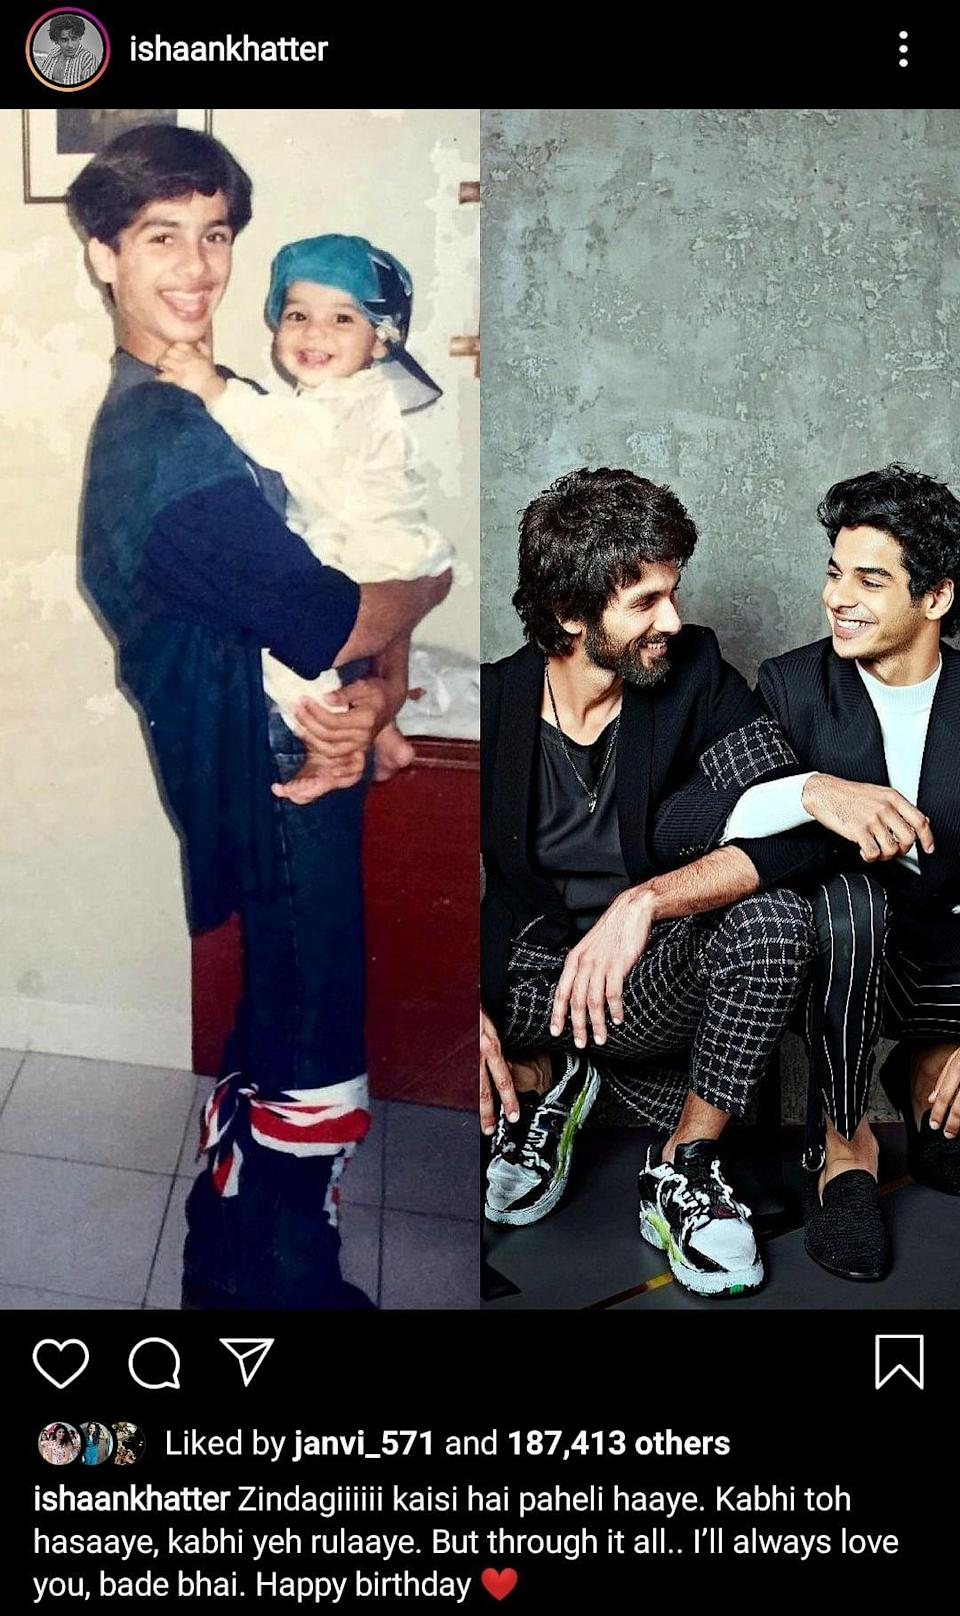 Ishaan Khatter's Instagram post with then and now pictures of the duo